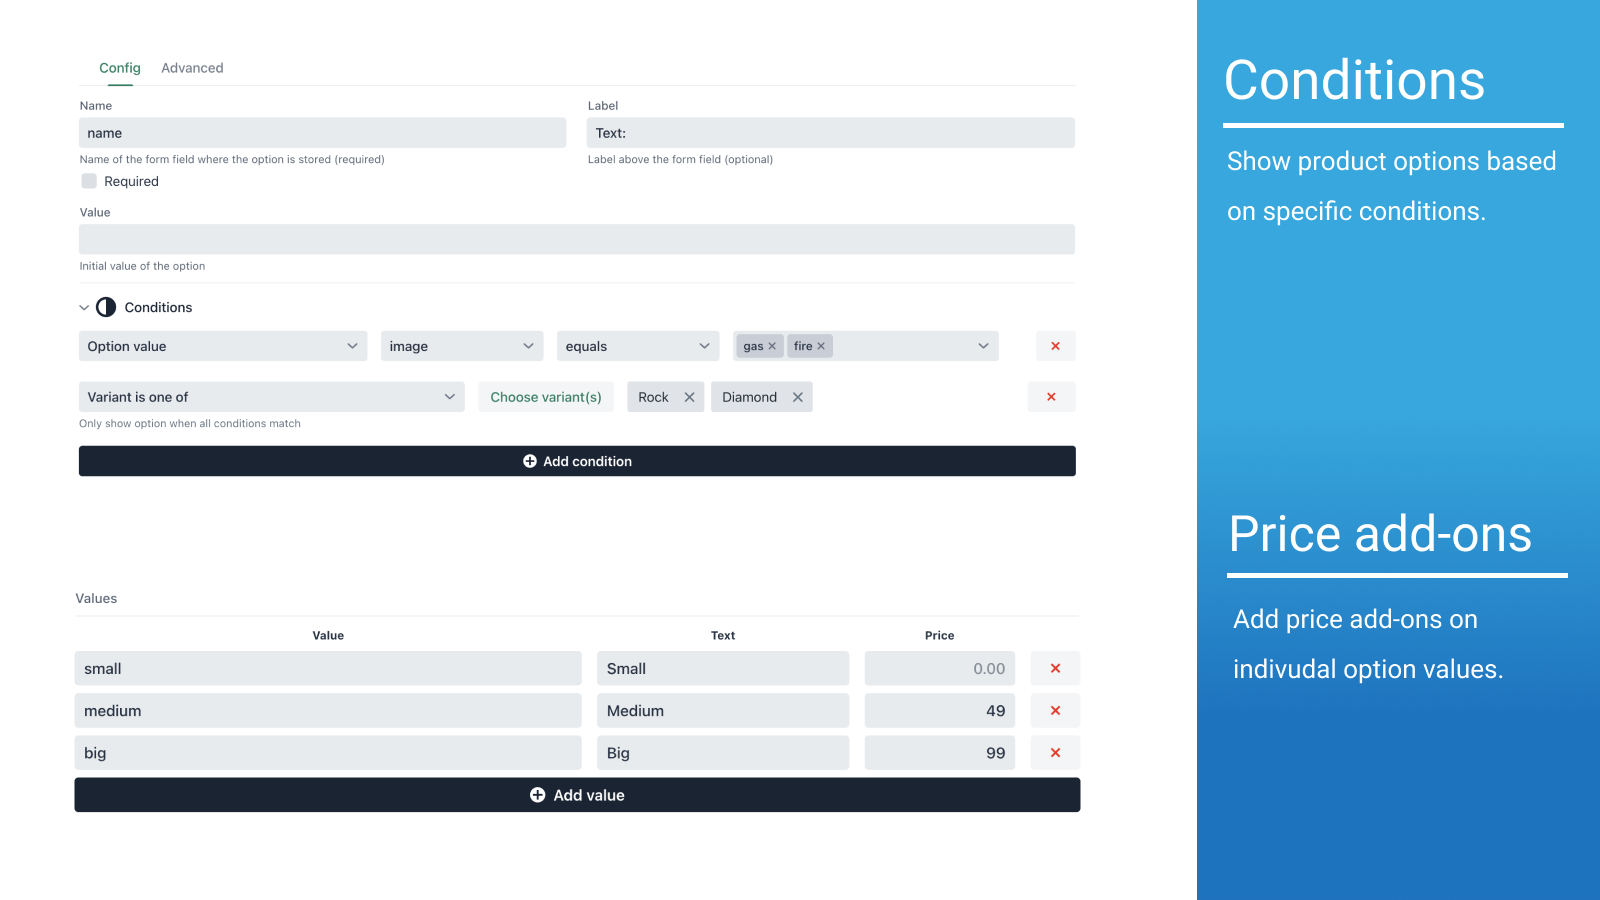 Show product options based on specific conditions.